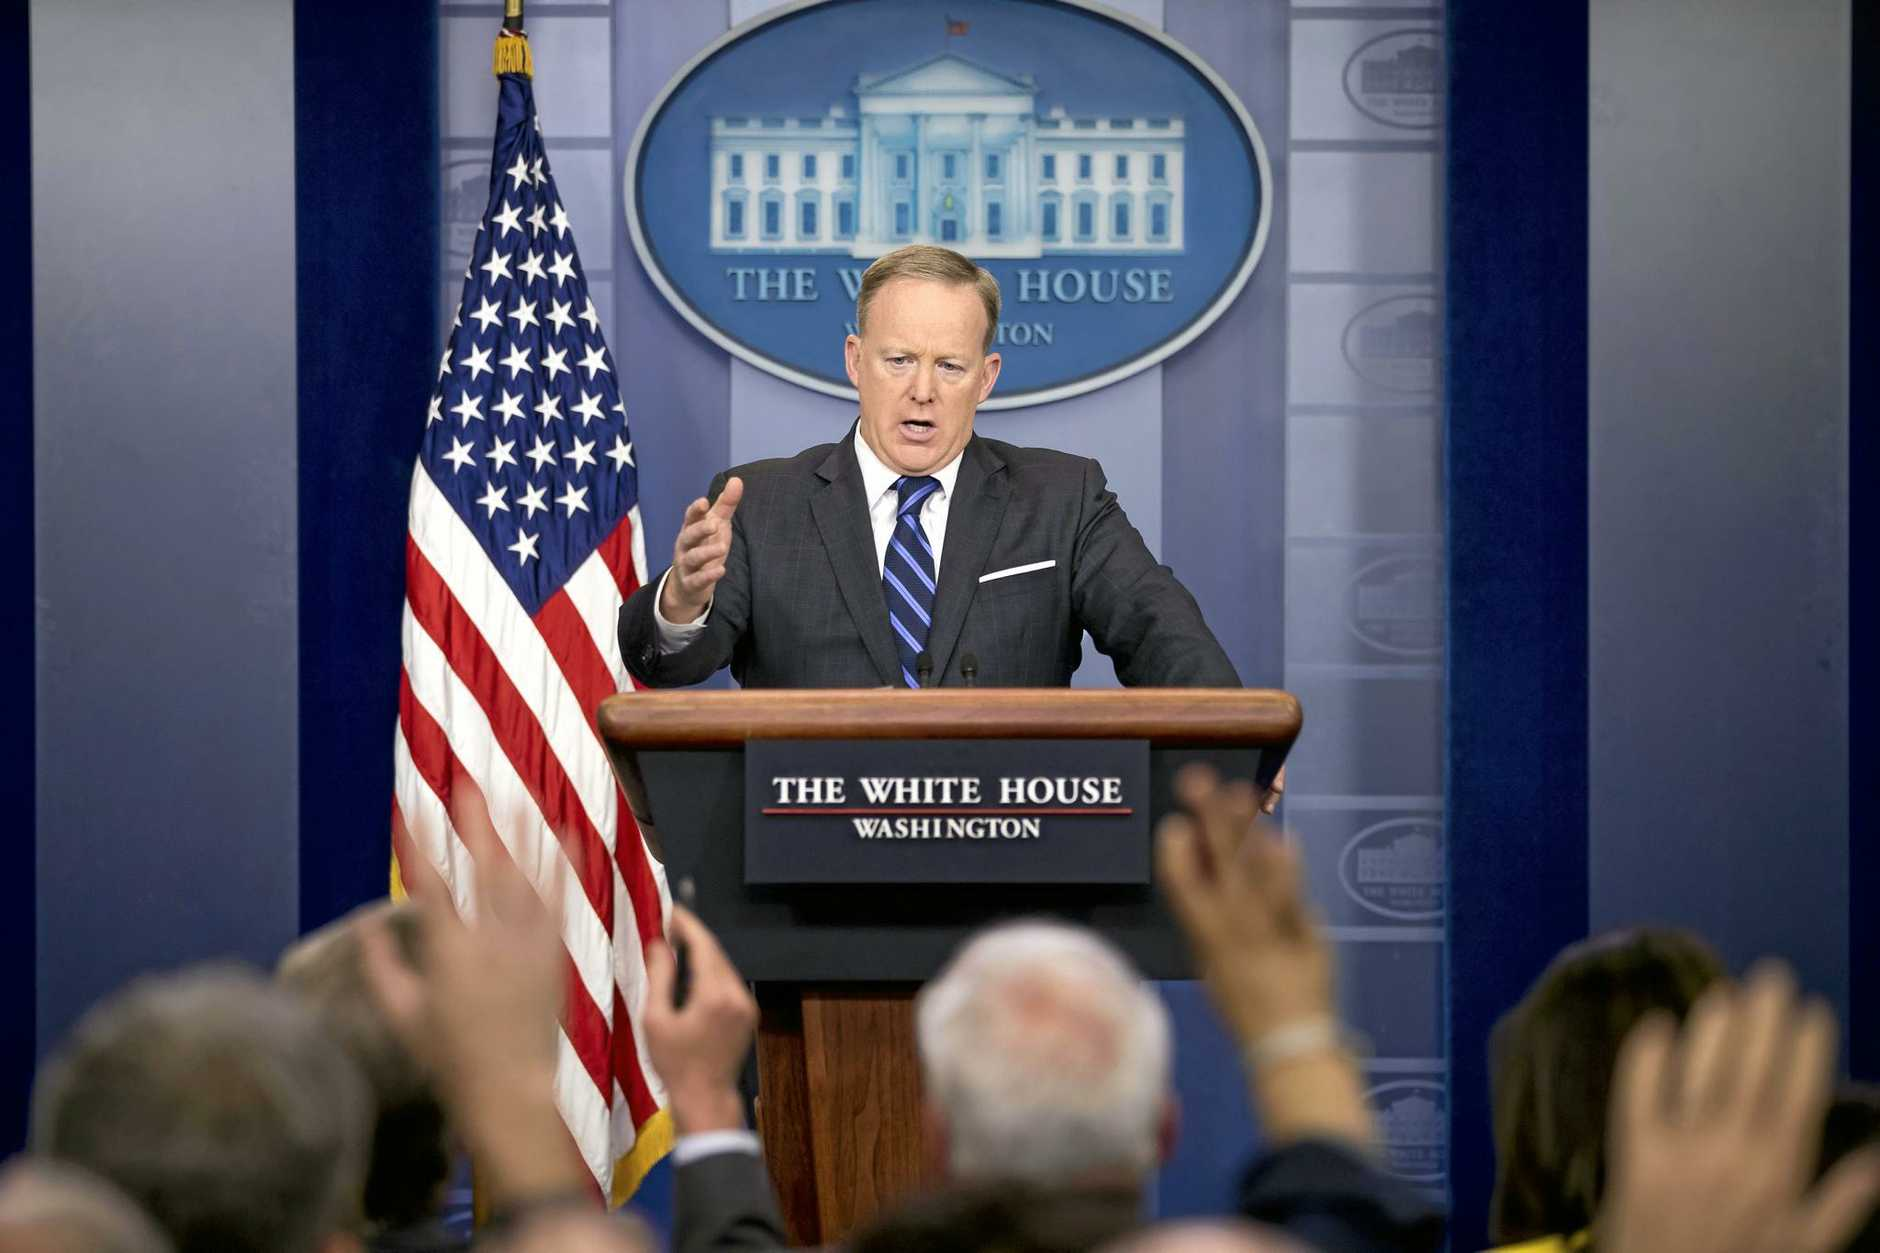 ASSAD WARNED: White House press secretary Sean Spicer says Donald Trump will respond if Syria launches chemical attacks.